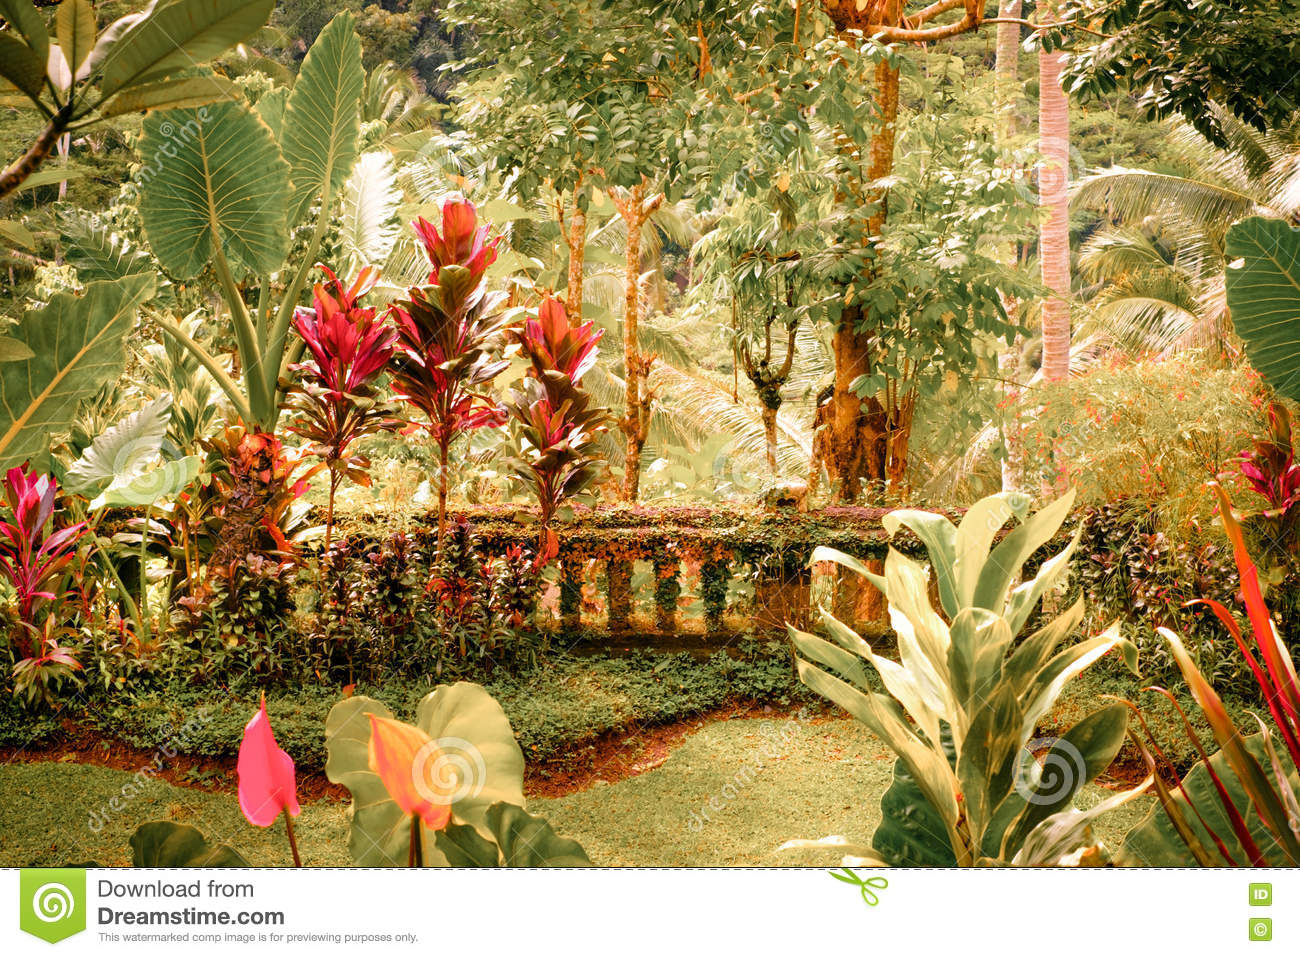 Surreal Colors Of Fantasy Tropical Garden Stock Photo - Image of ...